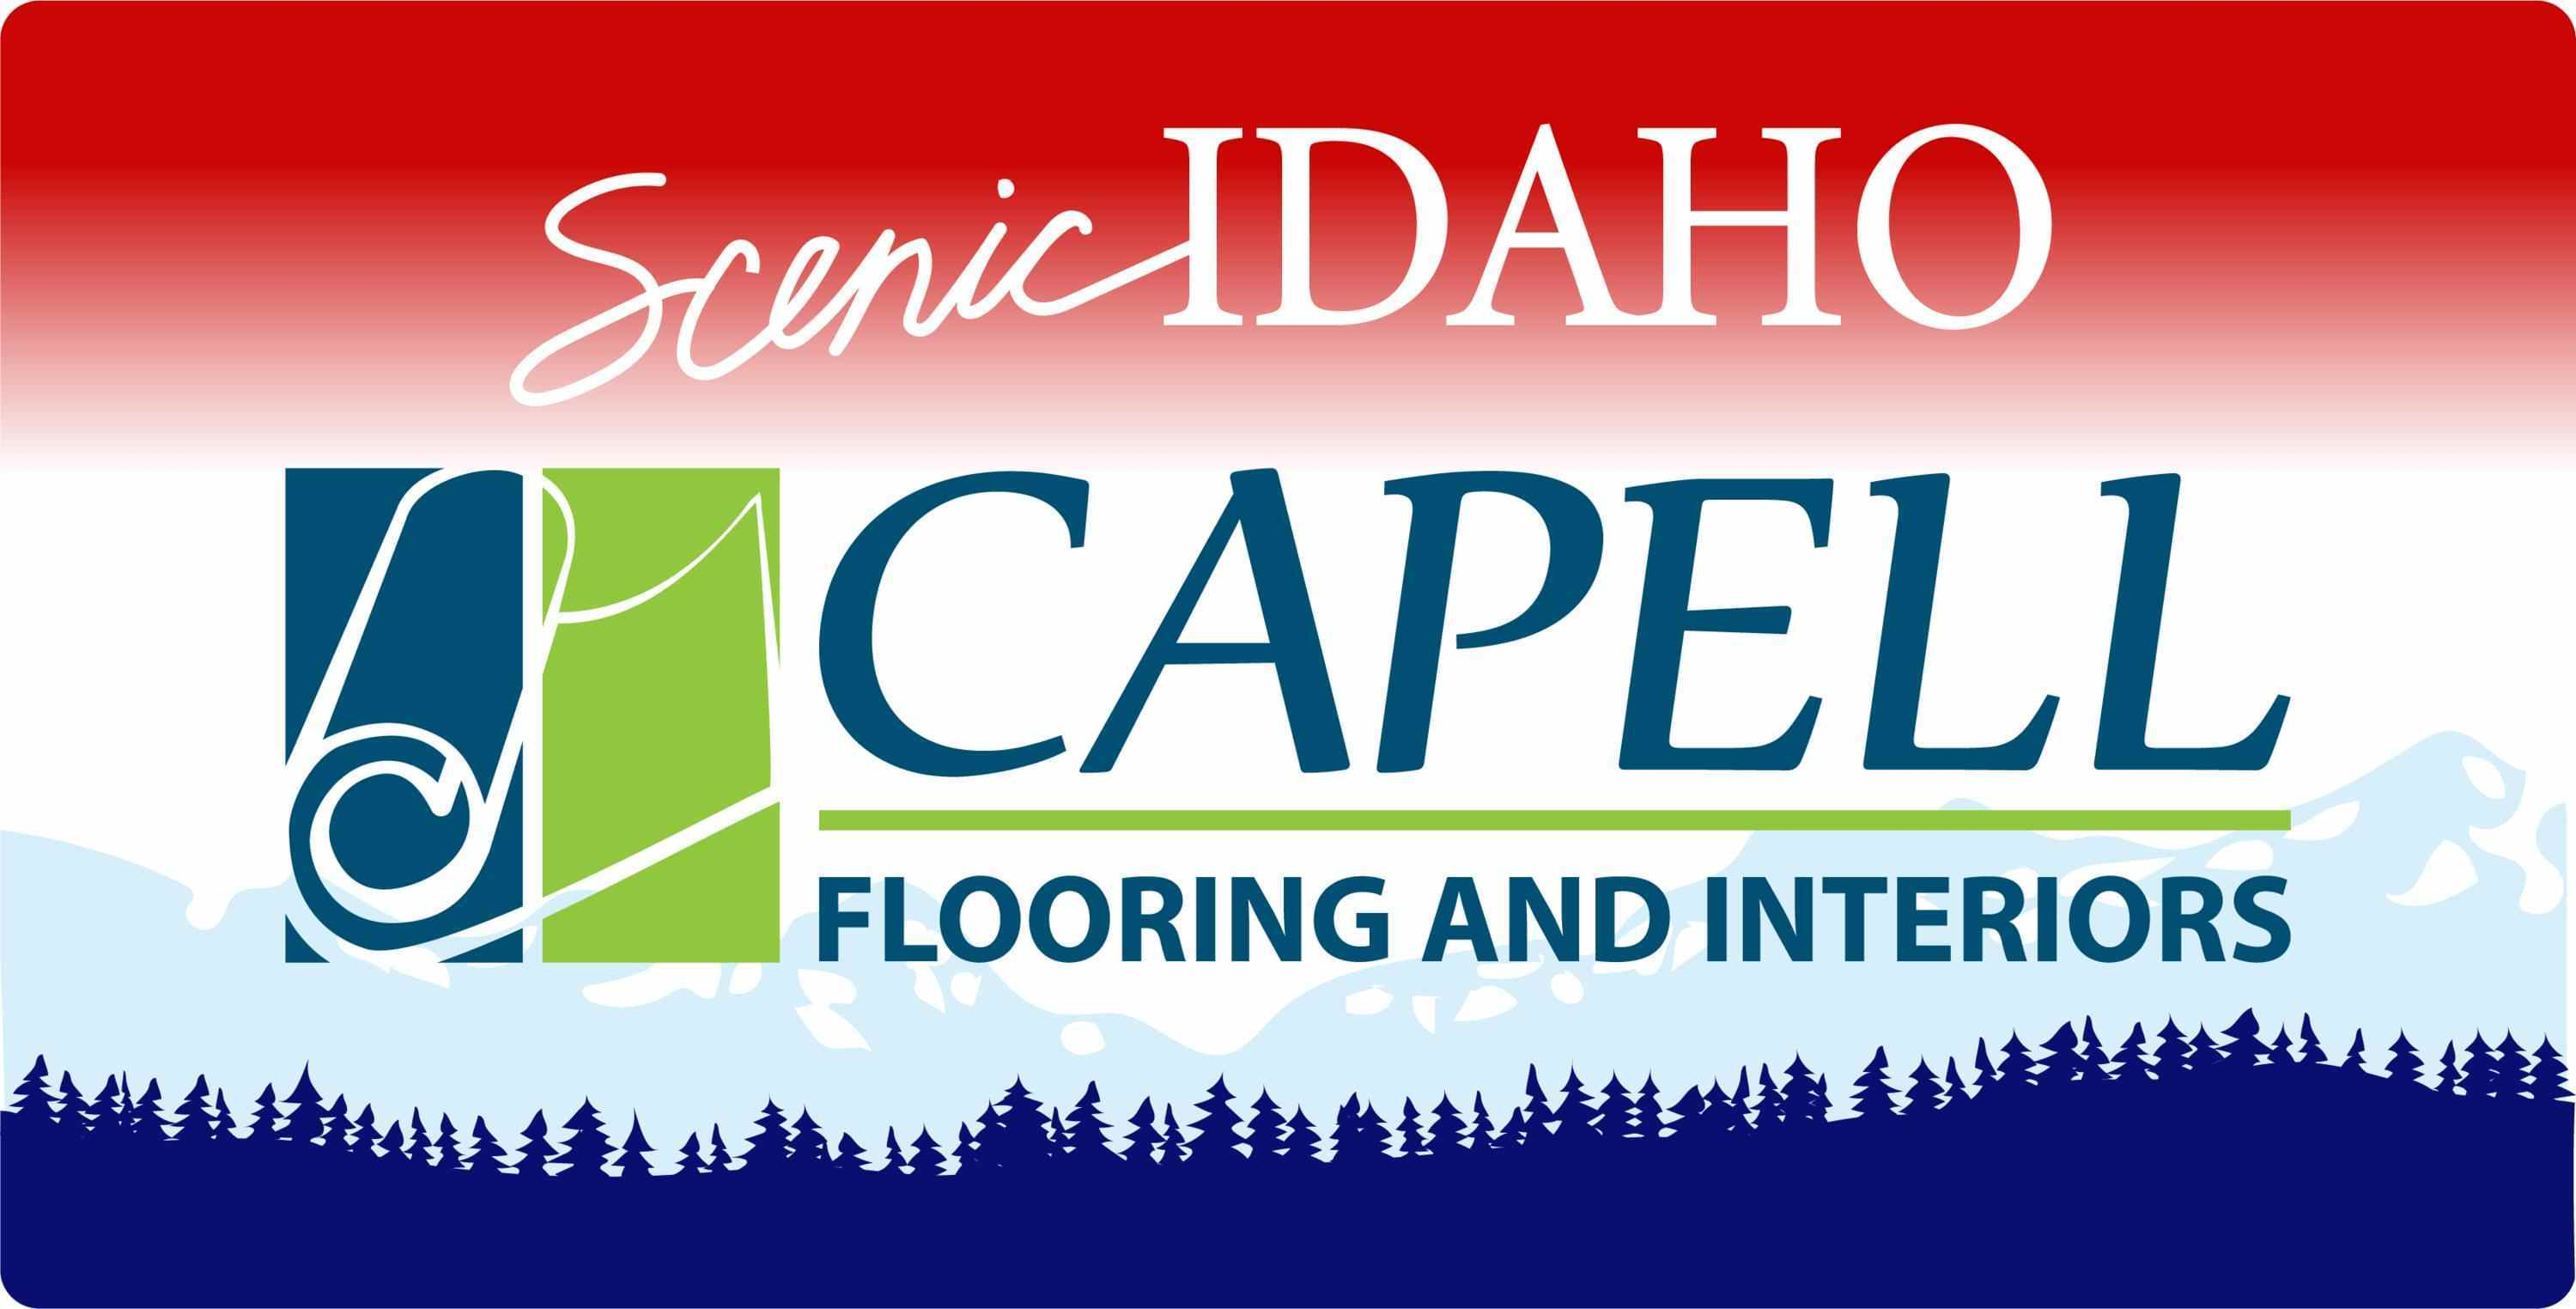 Capell Flooring and Interiors, Boise Flooring, Boise Carpet, Boise Tile, Boise Hardwood